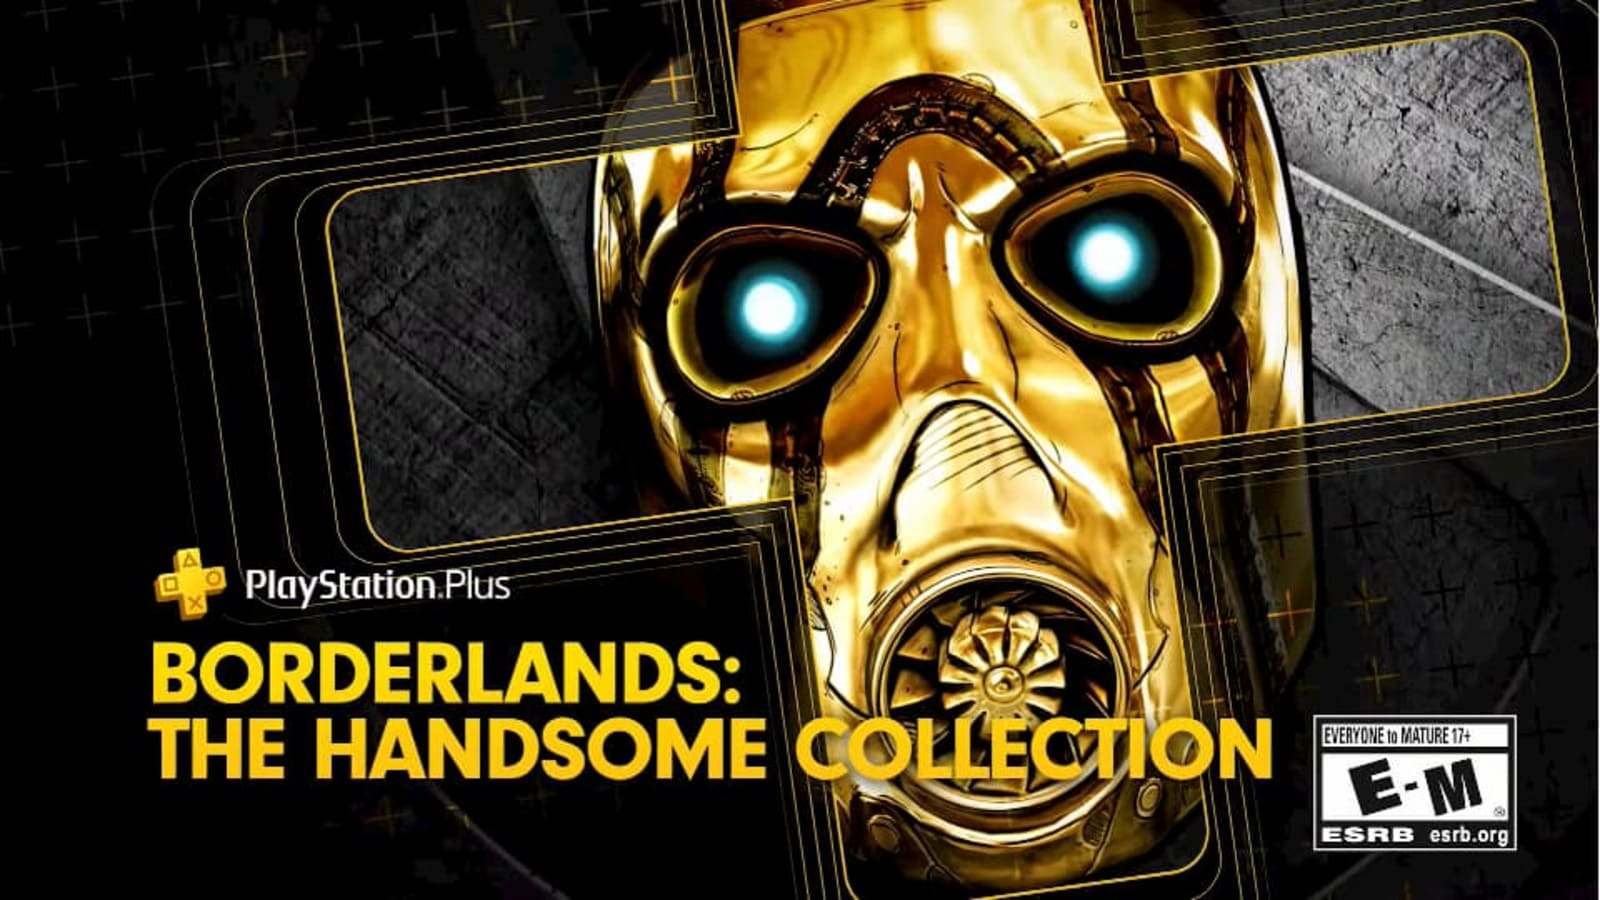 Borderlands: Handsome Collection' headlines June's free PS Plus games